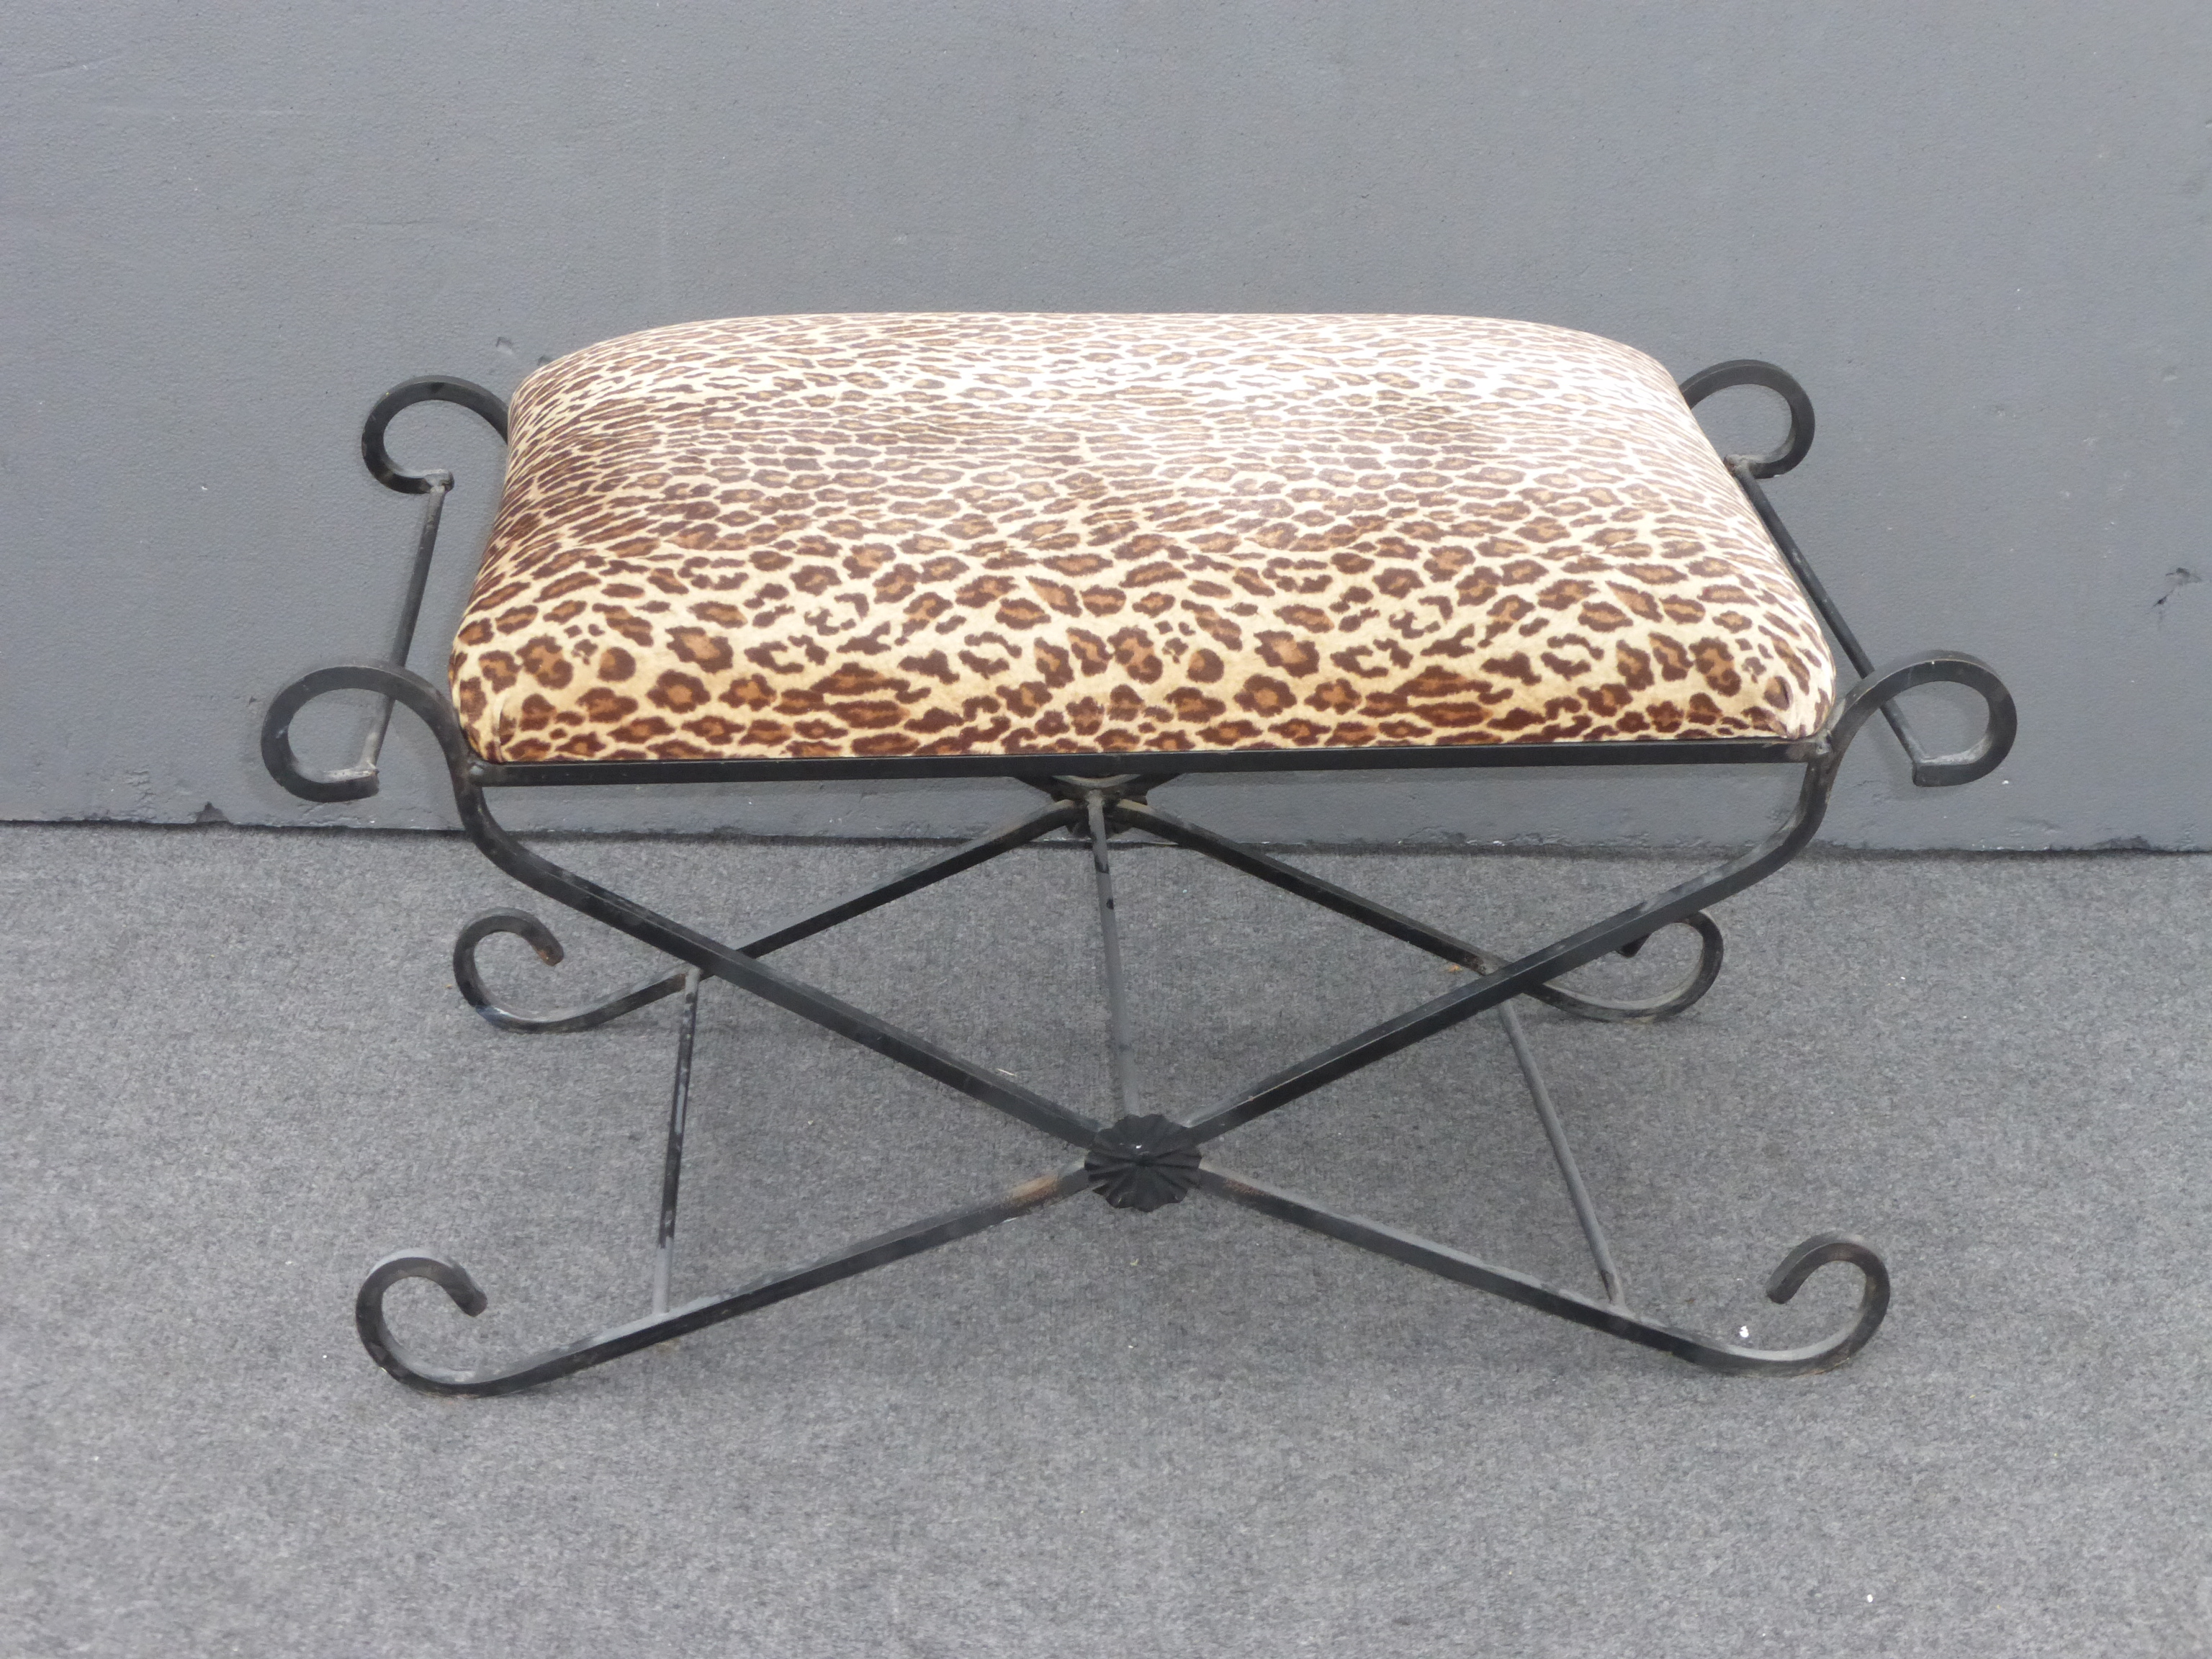 High Quality Vintage Leopard Print Wrought Iron Vanity Bench   Image 3 Of 9